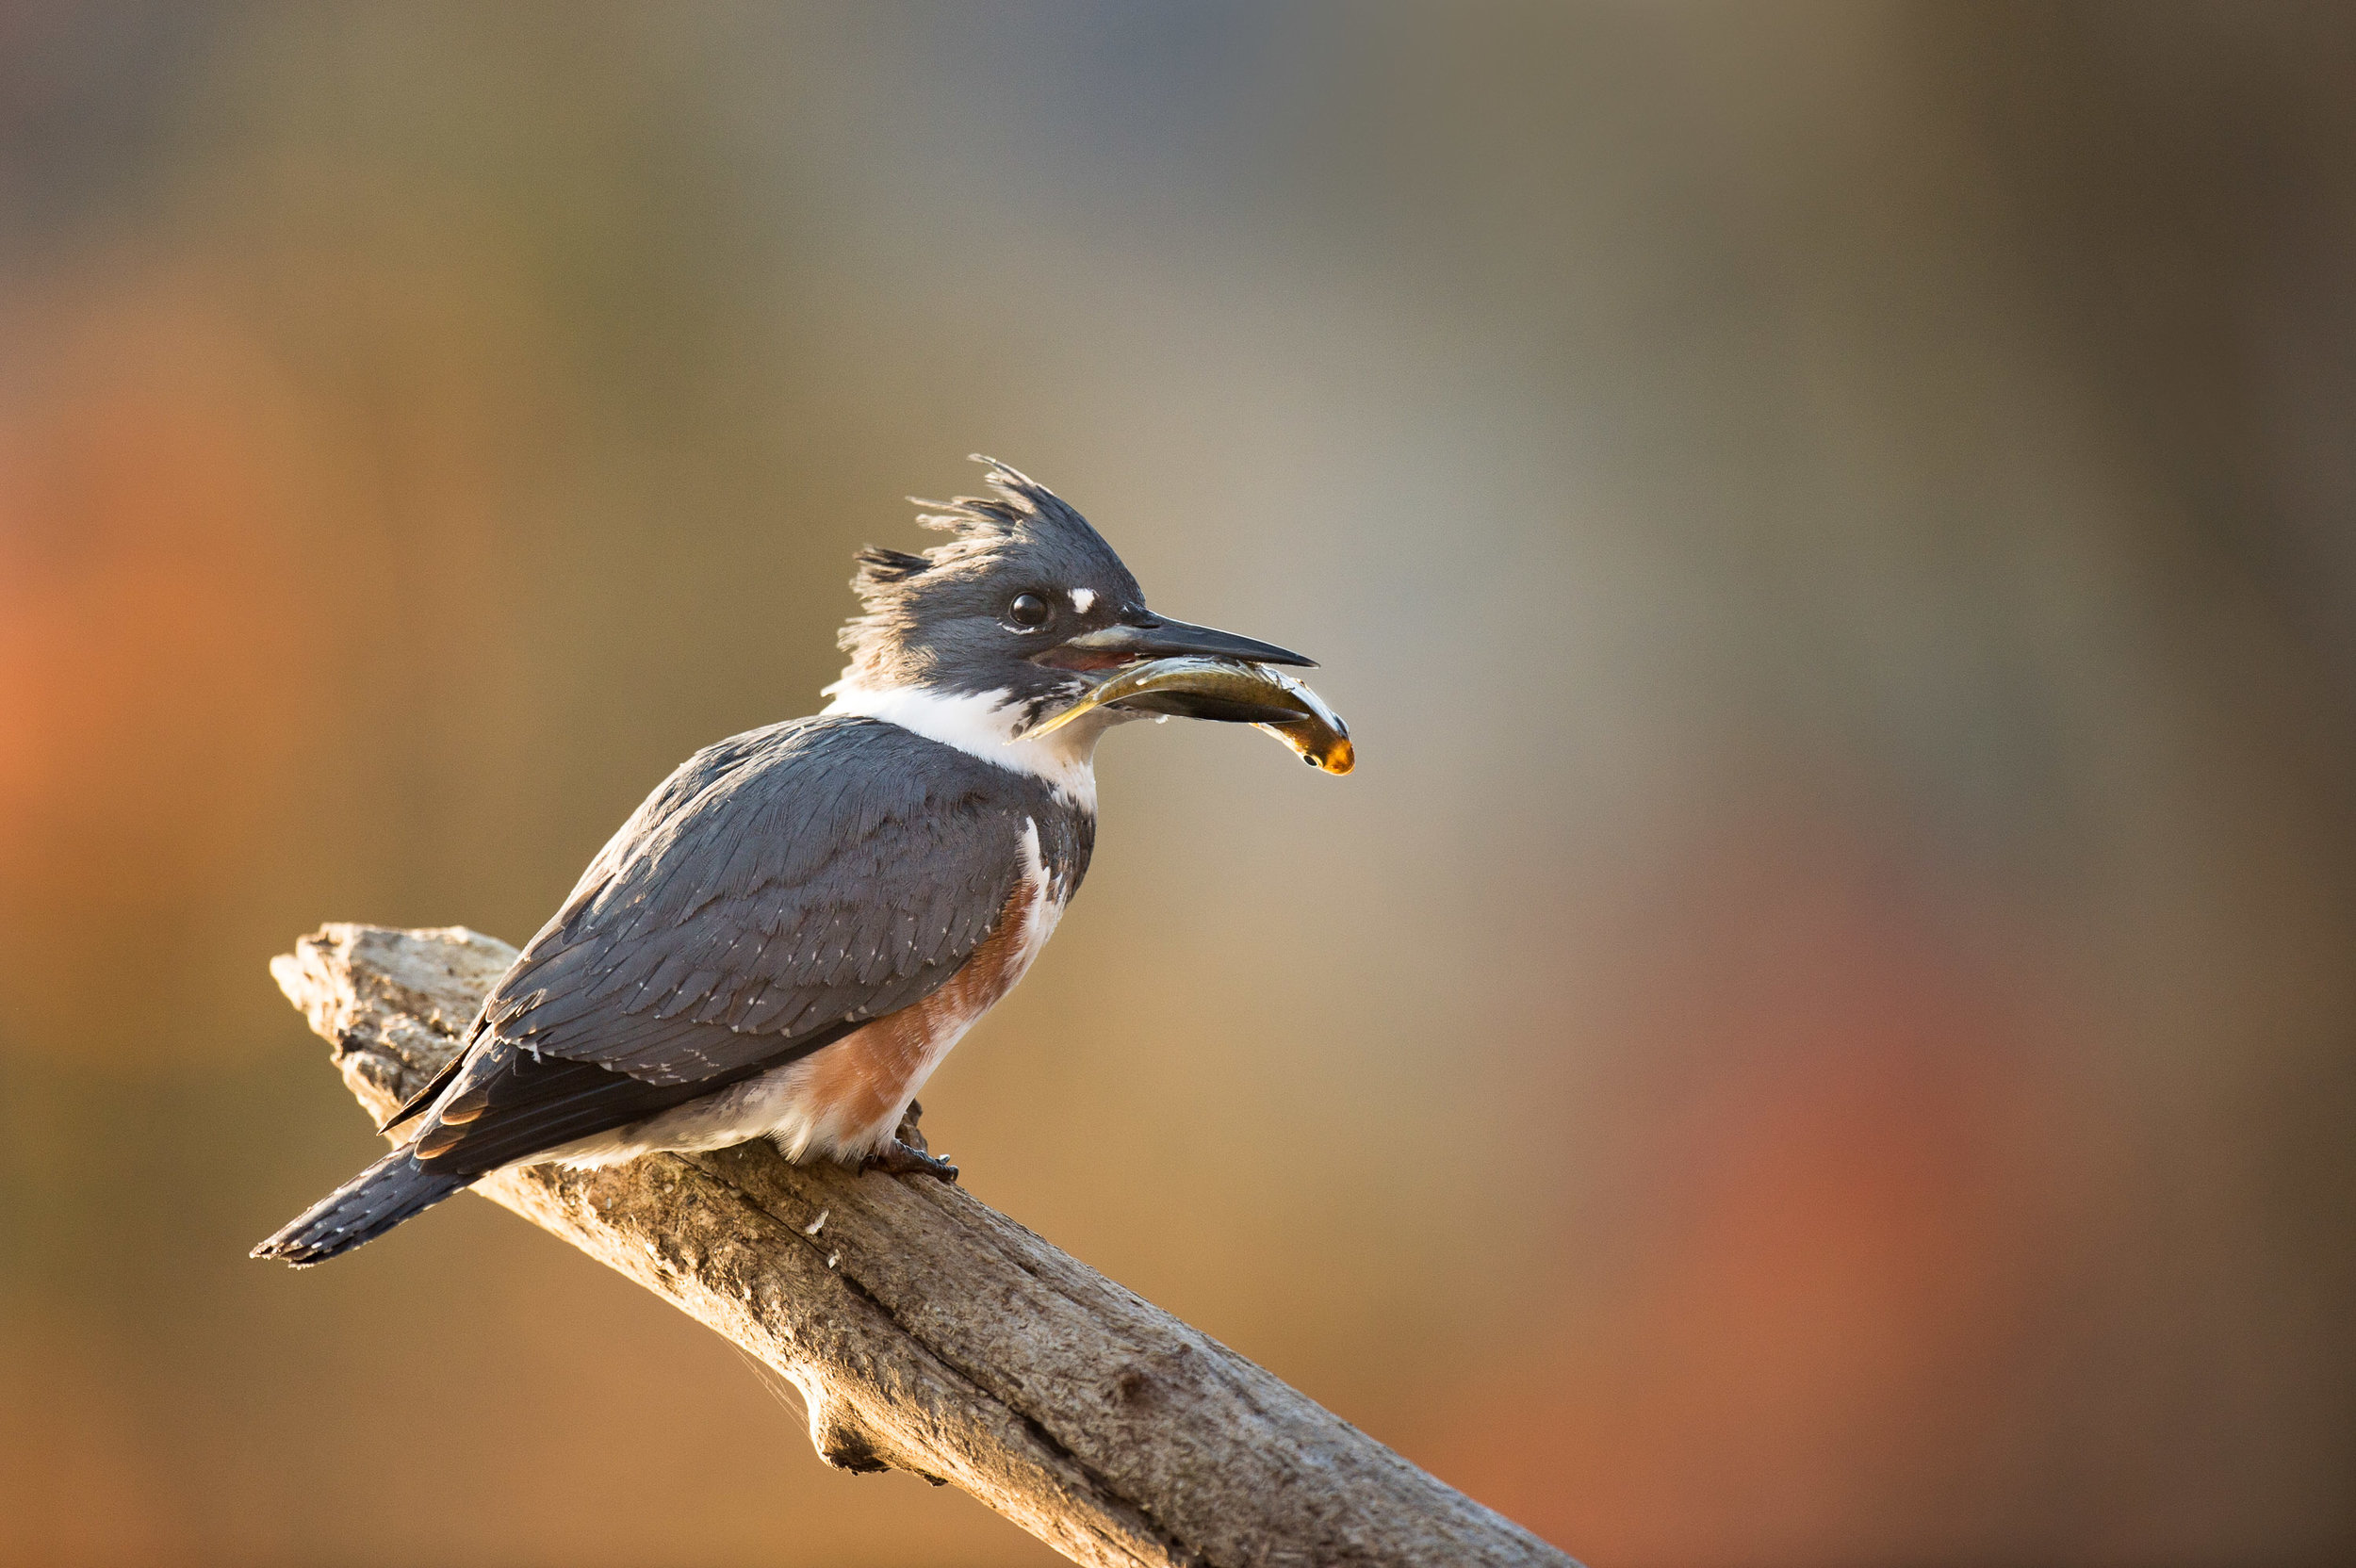 This was taken after years of working with these Kingfishers when it landed on a perch I installed in the pond for it to use.